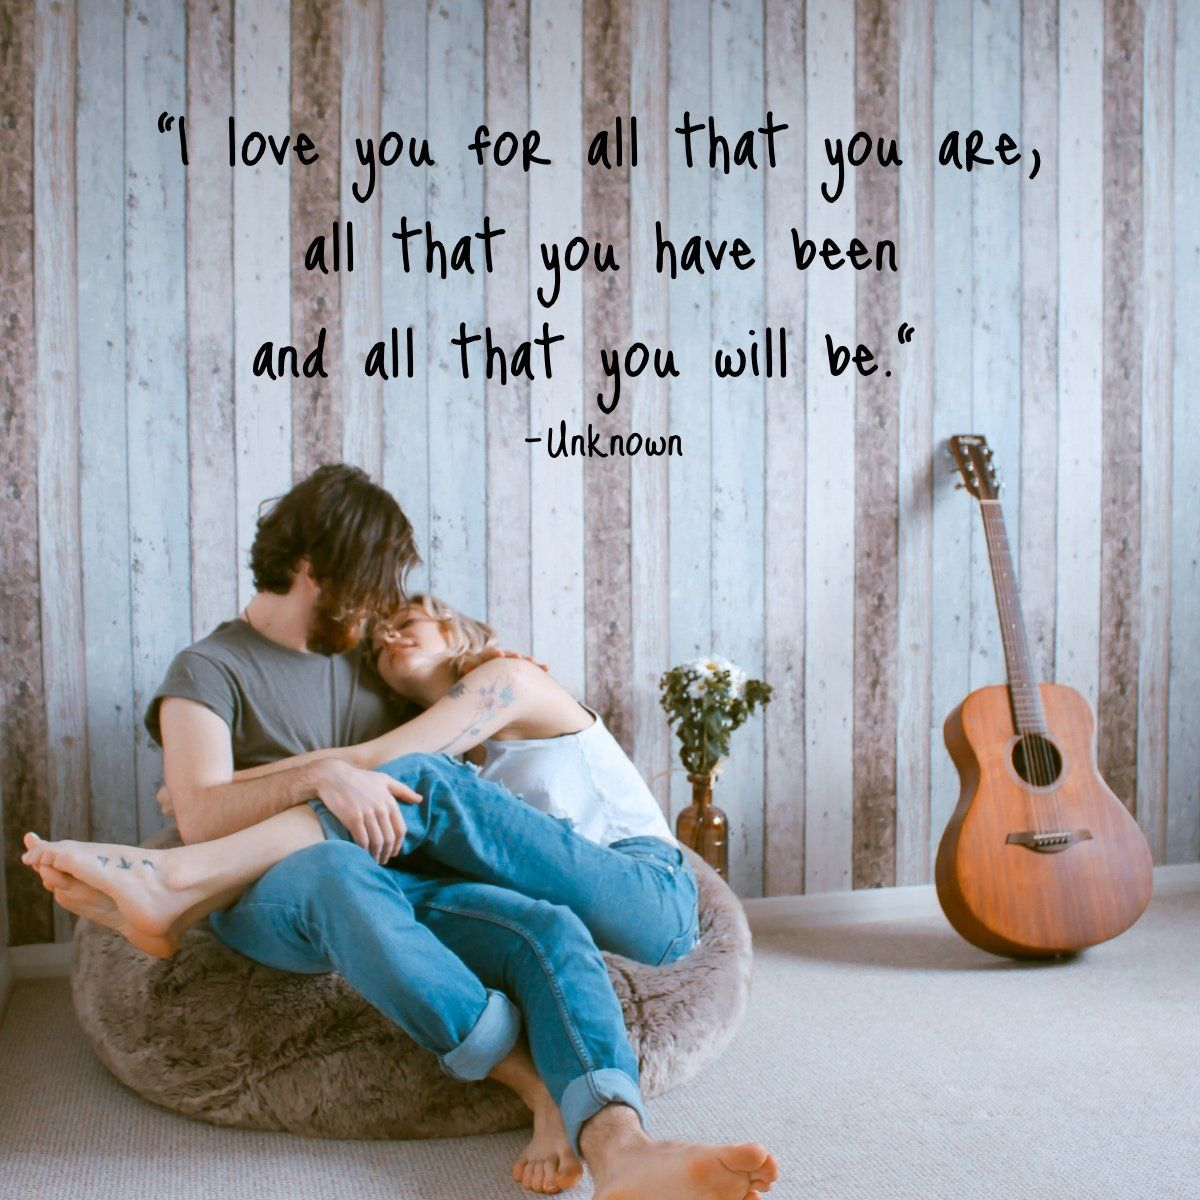 Sealed With a Kiss! 125 Romantic Love Quotes To Send Your